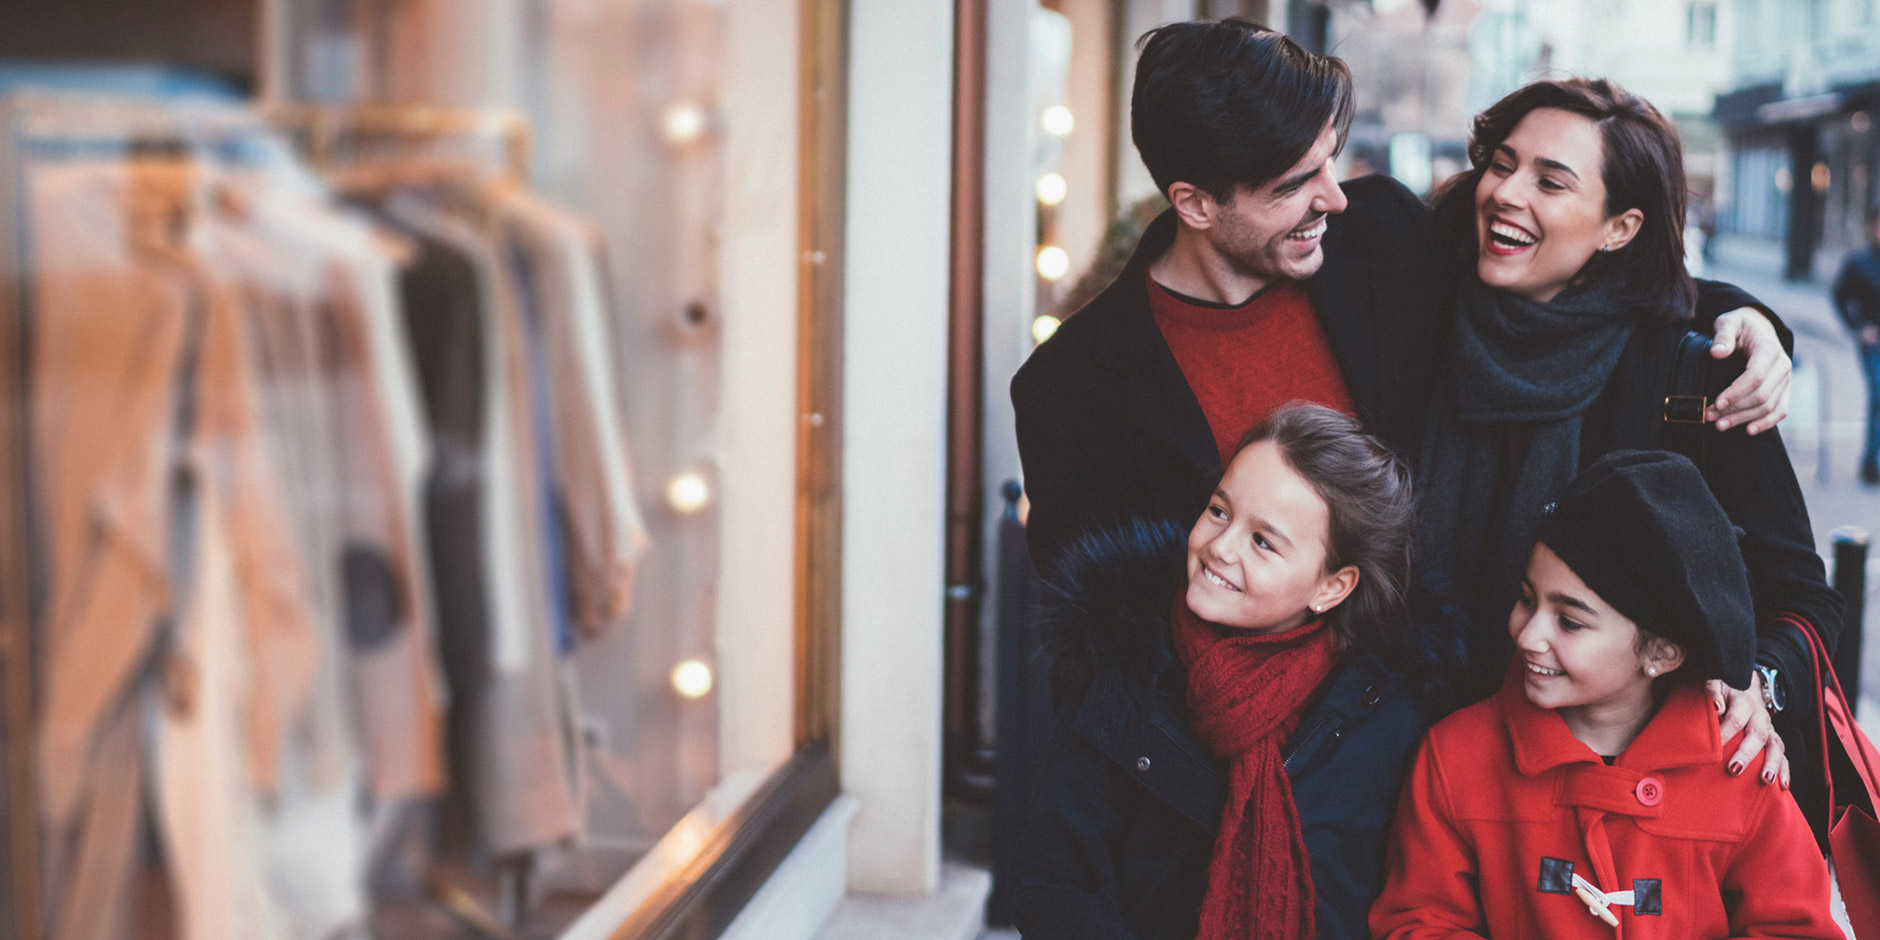 Mspark Predictions for 2019 Holiday Shopping - Mspark